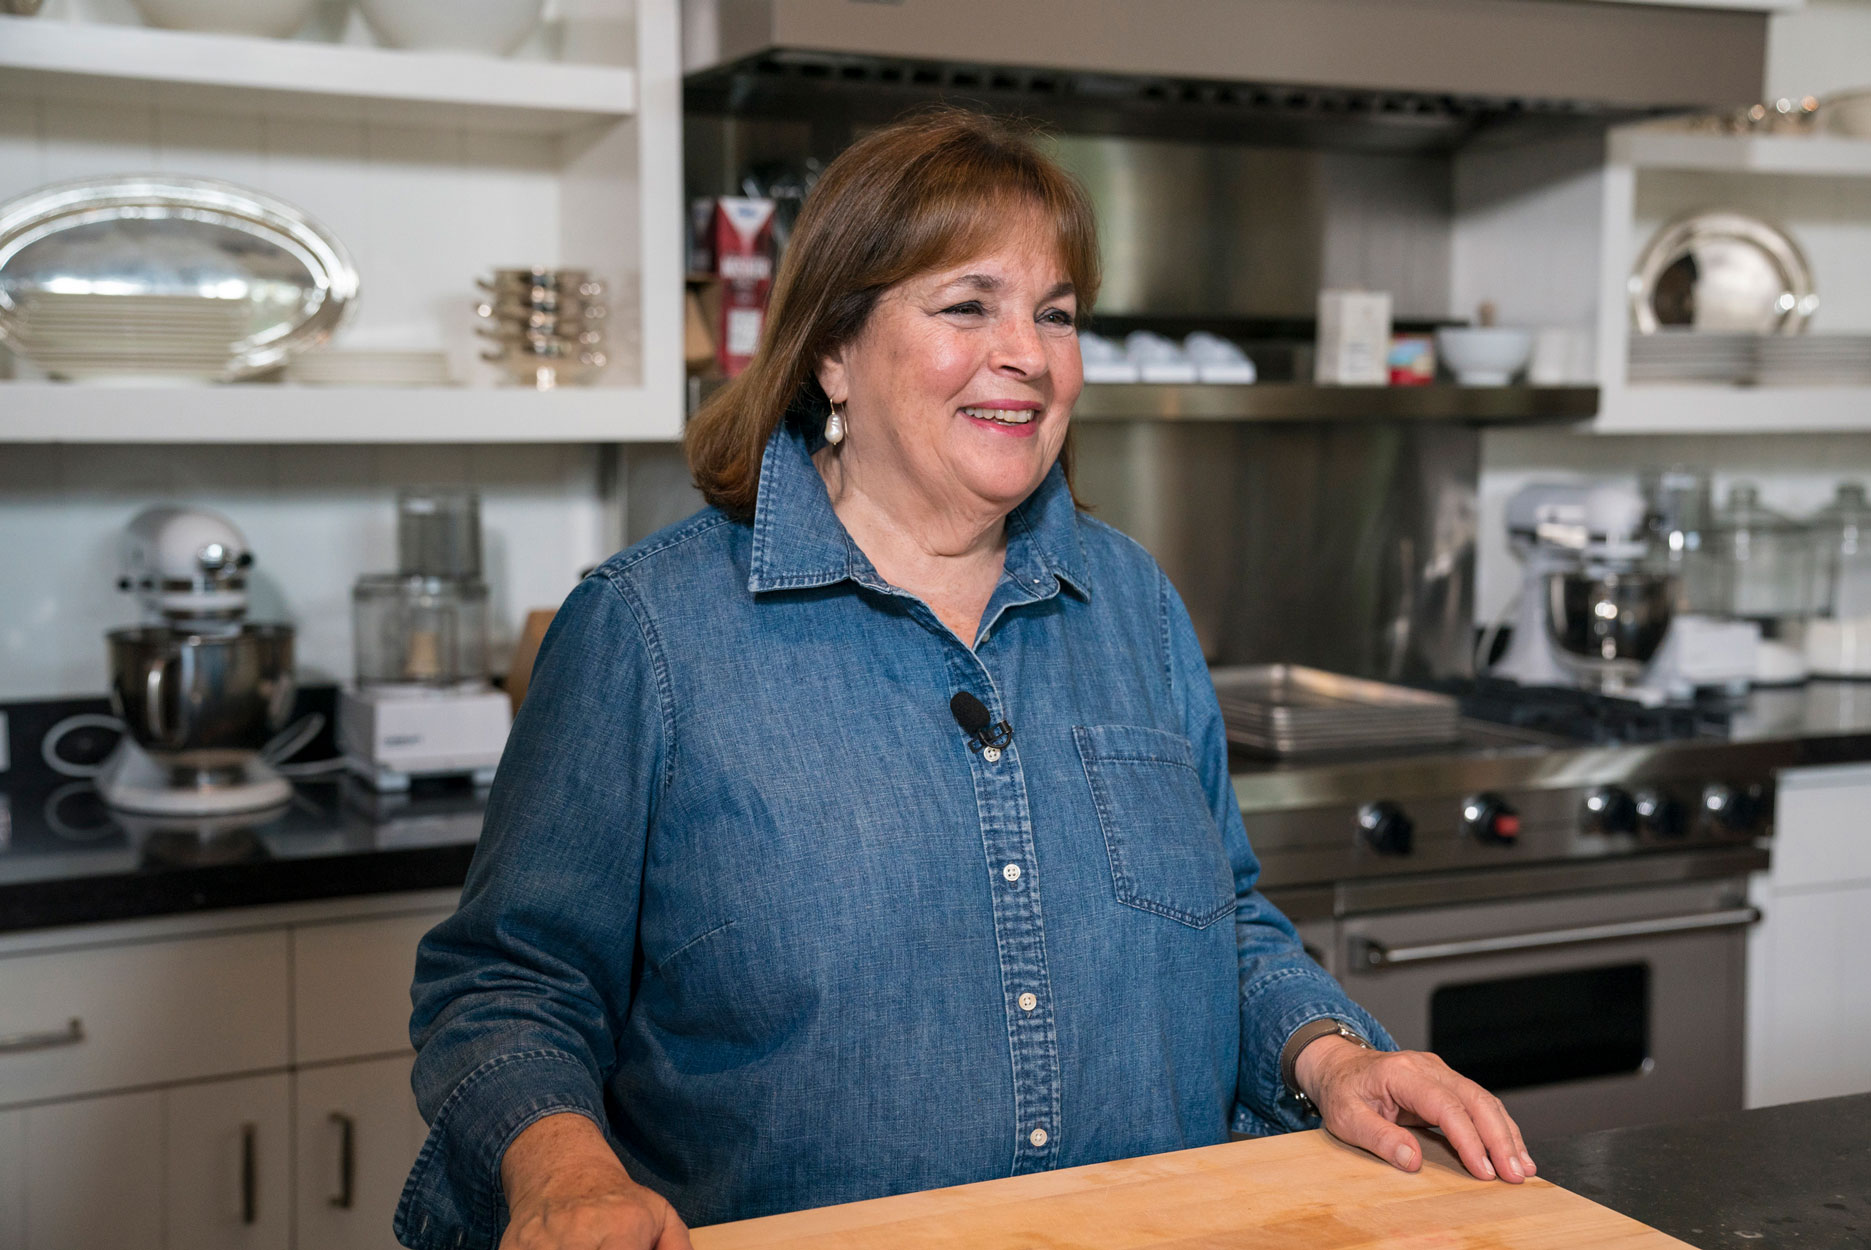 Ina garten freezer tips